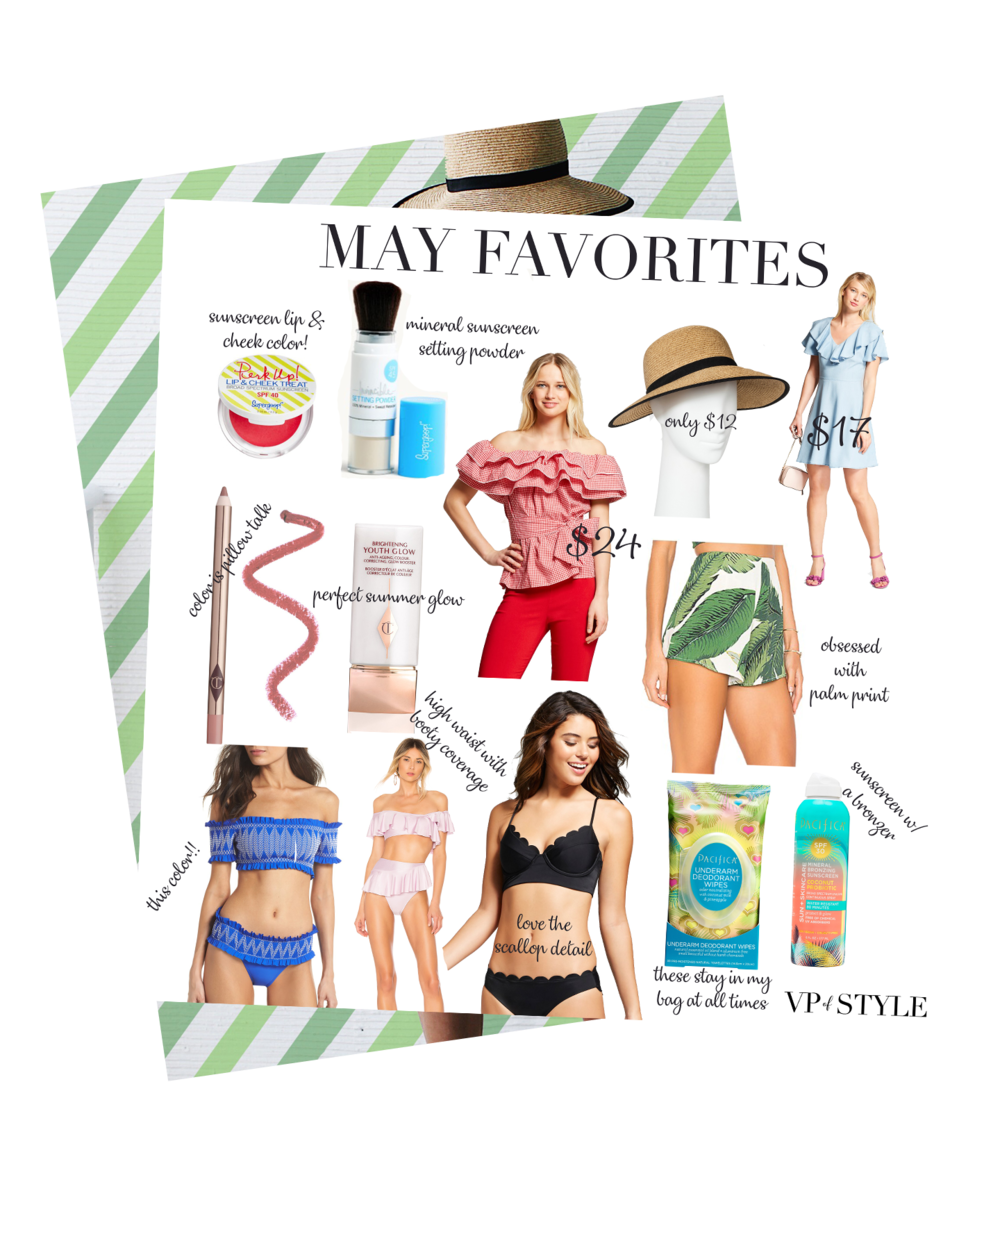 may favorites round up - I cannot believe that it's already the first of June. Where the Heck did May go, you ask!? Well for me,May was crazy busy with recitals, end of year school parties, exams, travel, my work in real estate, tennis tournaments, birthday parties, hangout fest, and the list could go on. I think we had a full week of activities and to do's every single week.It literally feels like I blinked that month Gone. Since May blew by so quickly,I thought I would do a recap of some of my favorite purchases and share them with you here.I bought a lot of great Summer essential items from sunscreen/beauty products to my favorite swimsuits and that will be great for the upcoming Summer months.